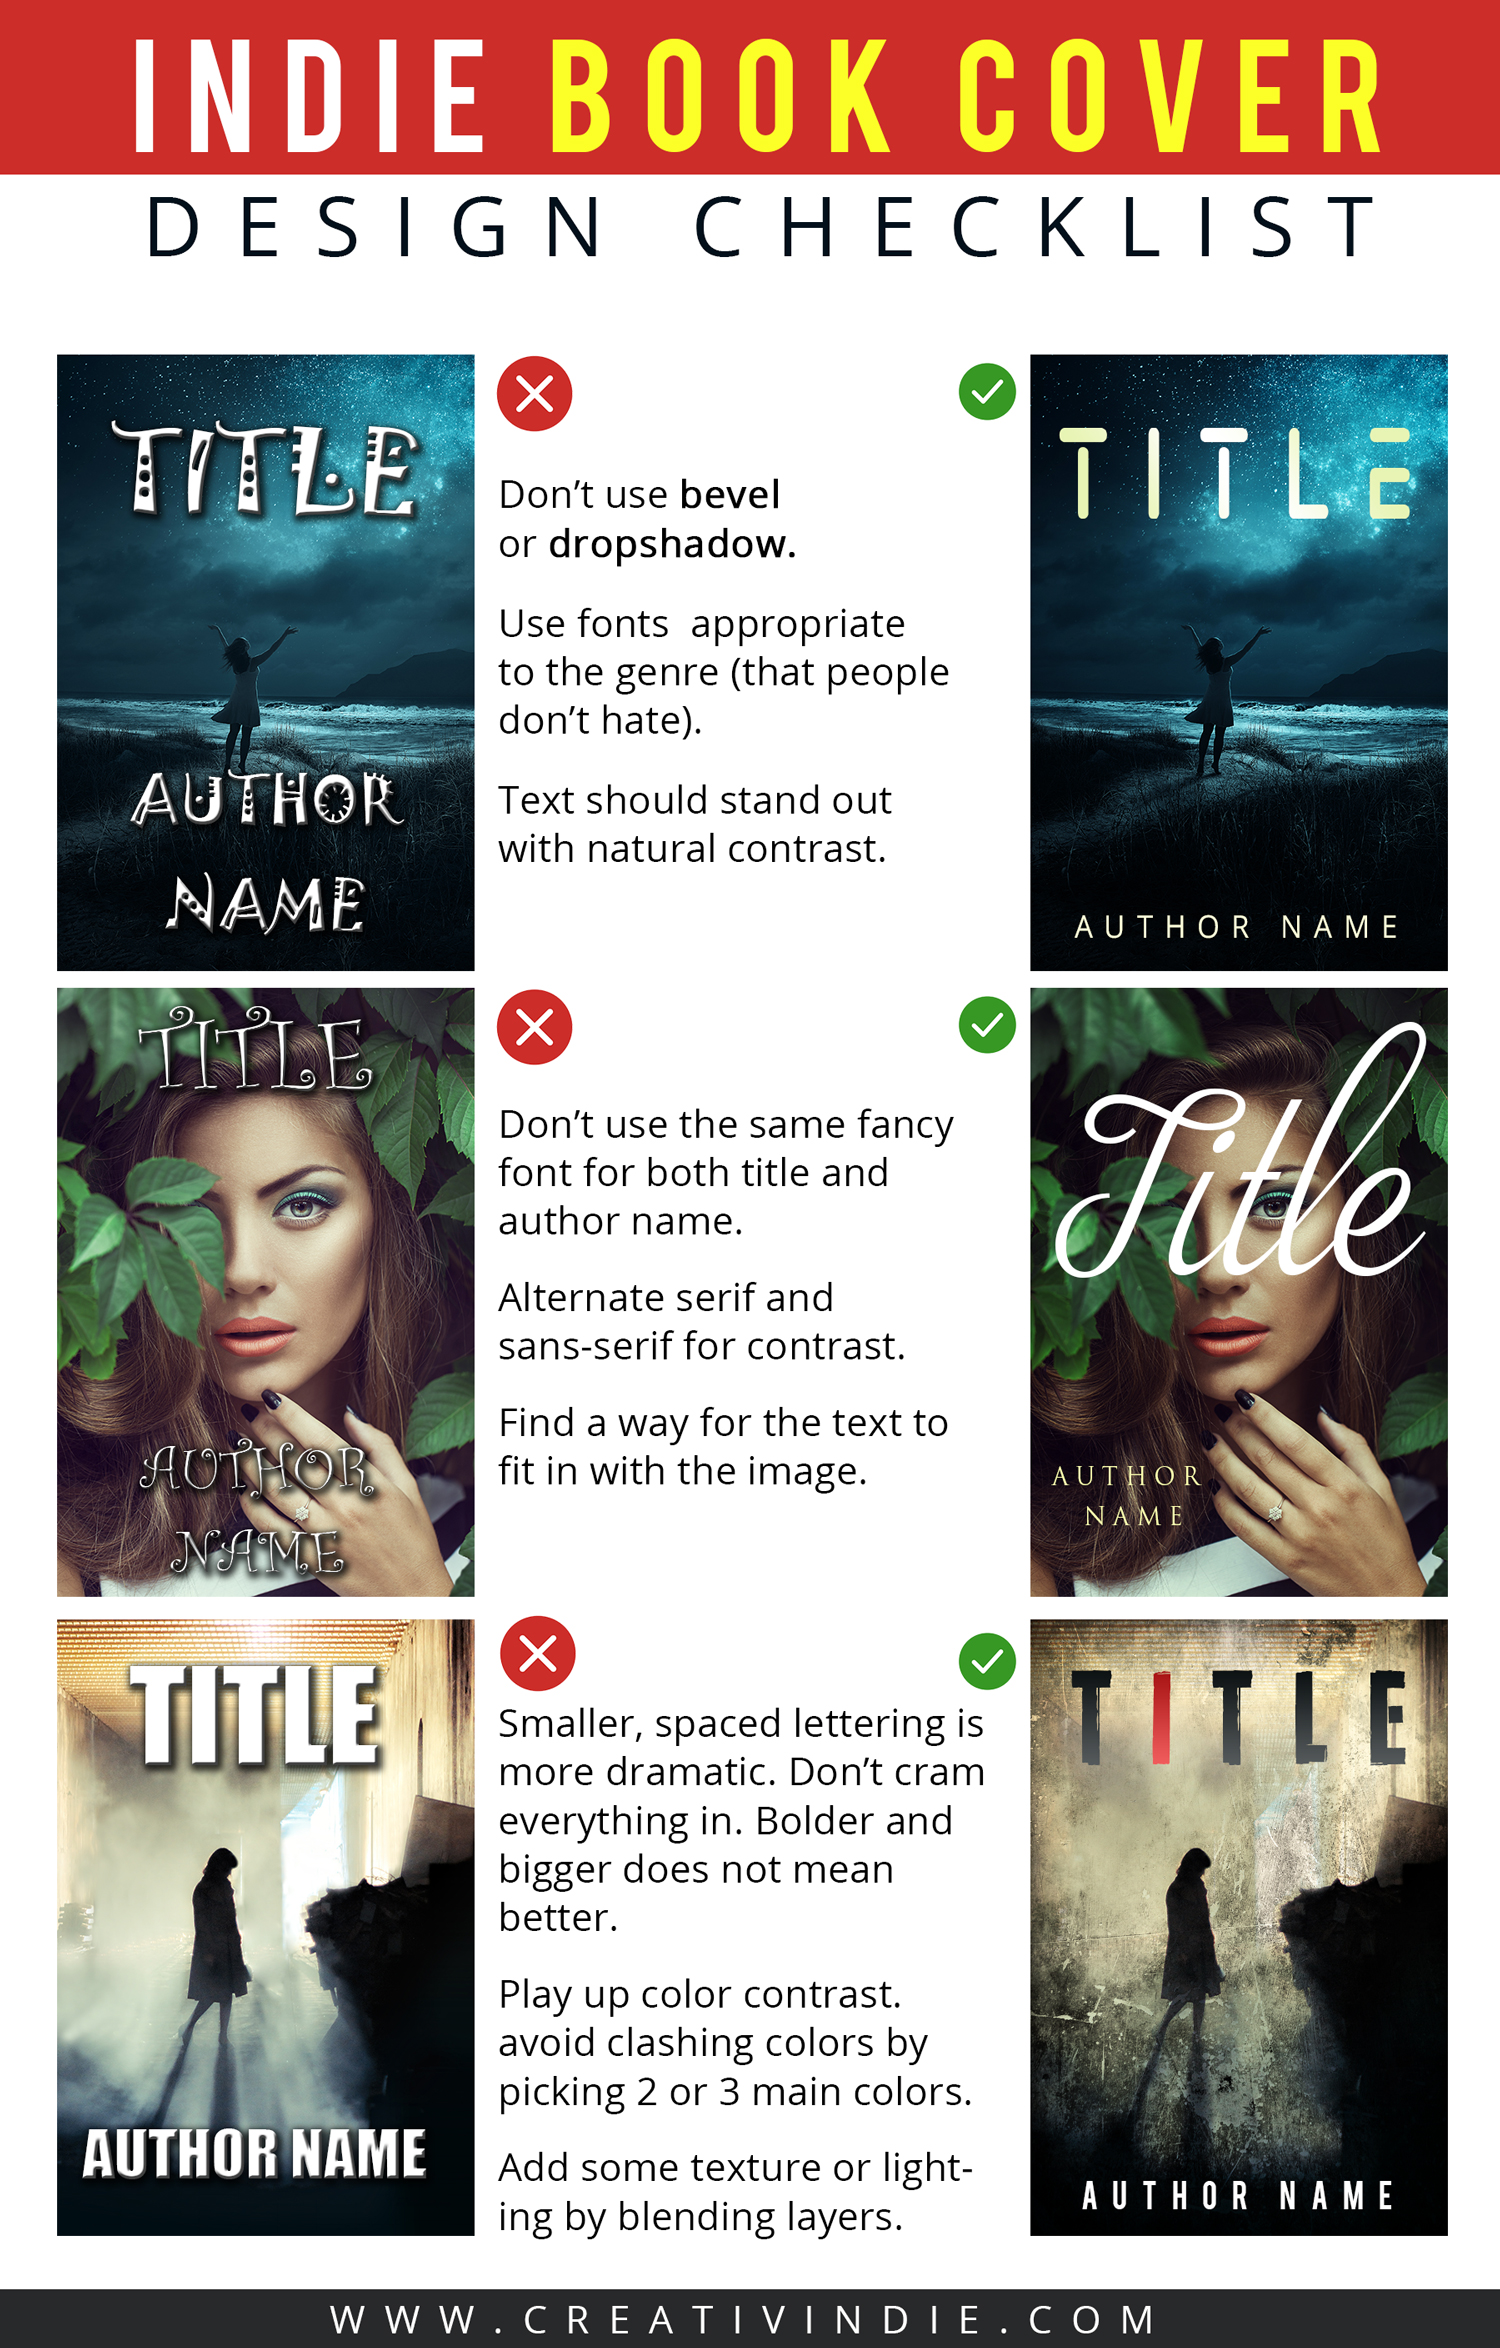 Everything you need to know about book cover design in one